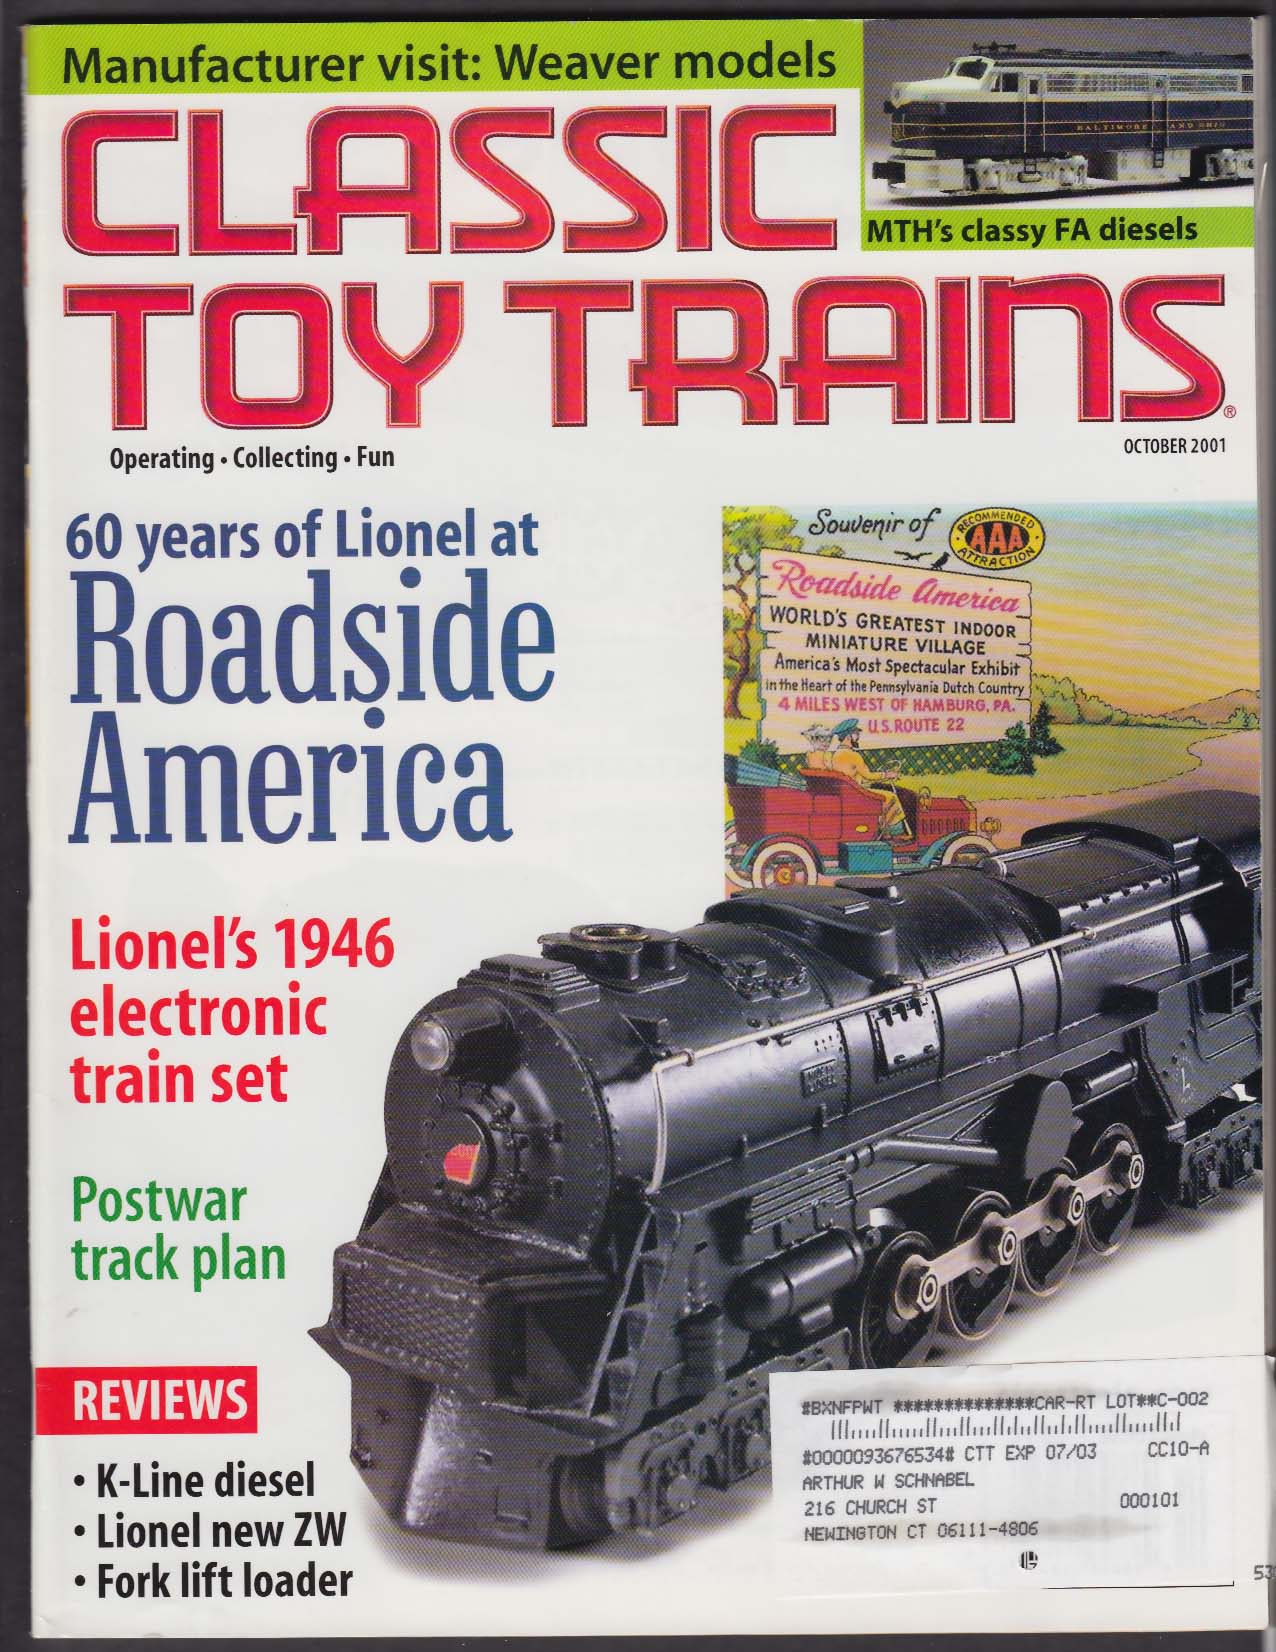 CLASSIC TOY TRAINS Lionel 1946 Electronic MTH FA Diesel Weaver Models + 10 2001